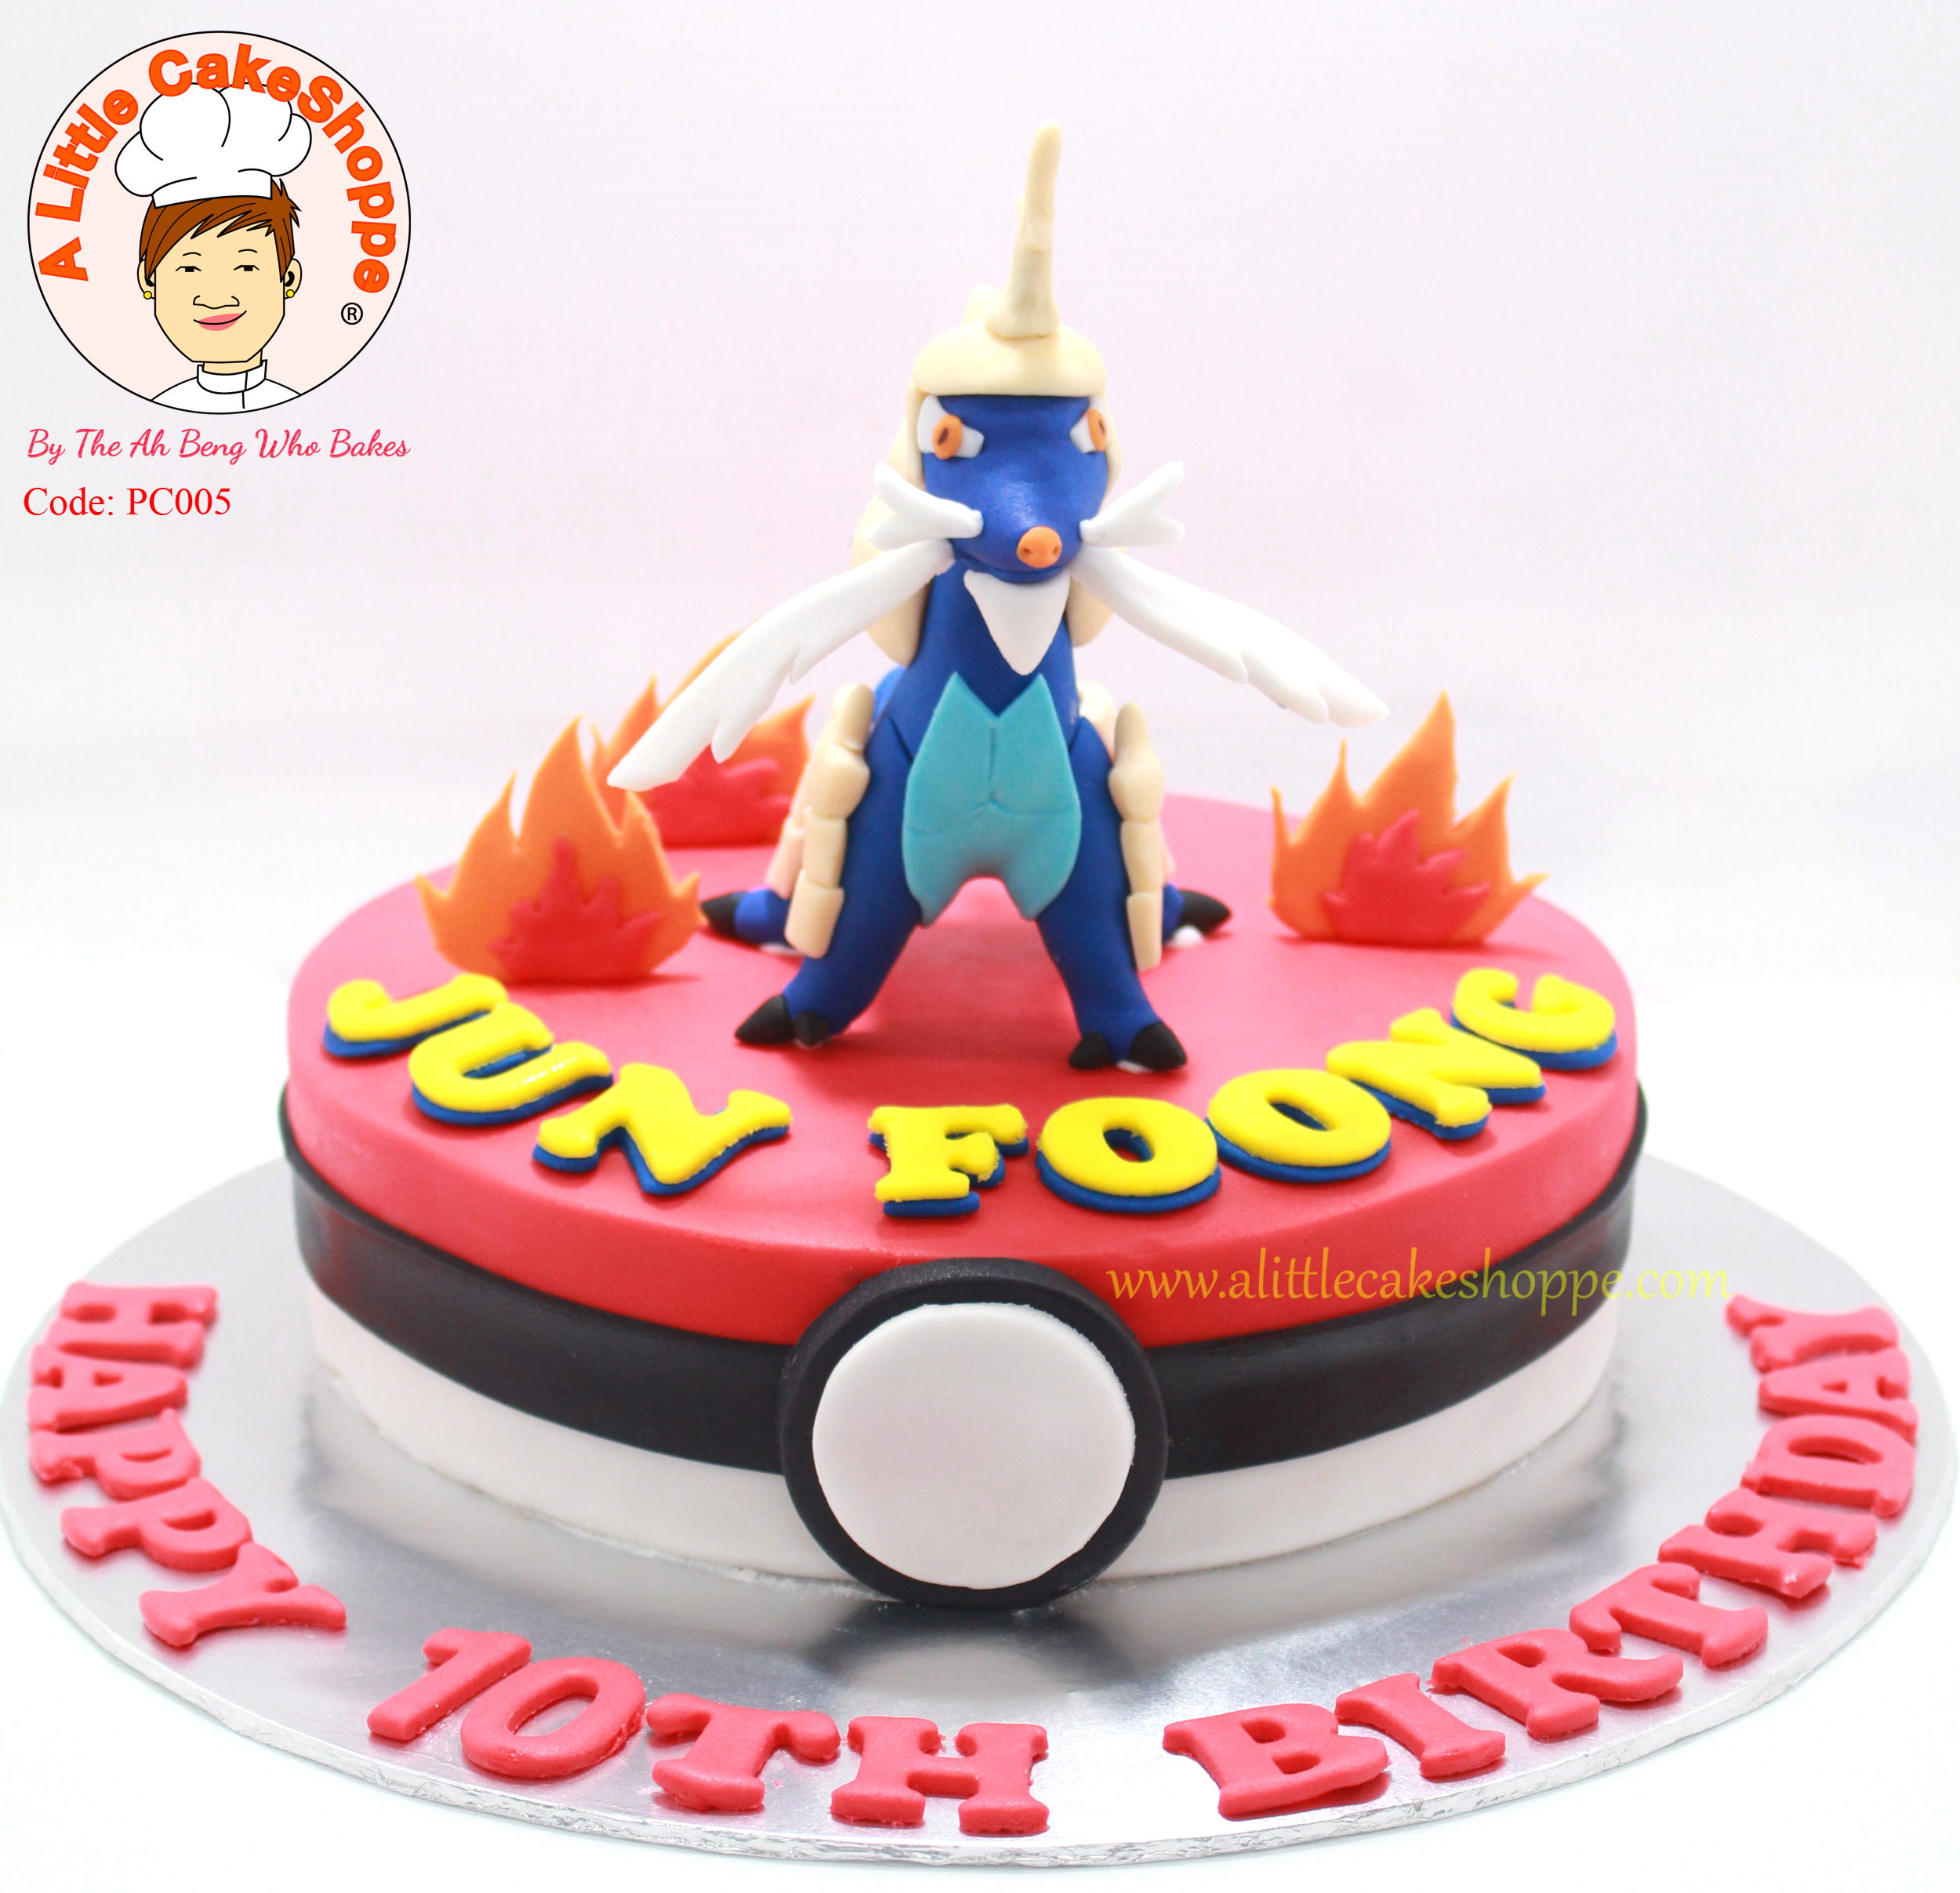 Best Customised Cake Shop Singapore custom cake 2D 3D birthday cake cupcakes desserts wedding corporate events anniversary 1st birthday 21st birthday fondant fresh cream buttercream cakes alittlecakeshoppe a little cake shoppe compliments review singapore bakers SG cake shop cakeshop ah beng who bakes pokemon